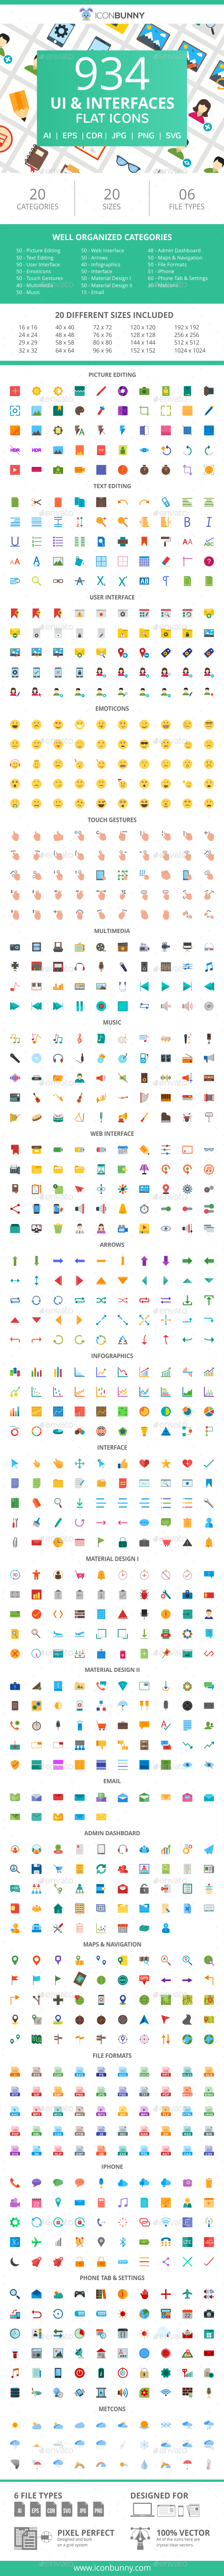 GraphicRiver 934 UI & Interfaces Flat Icons 21055698